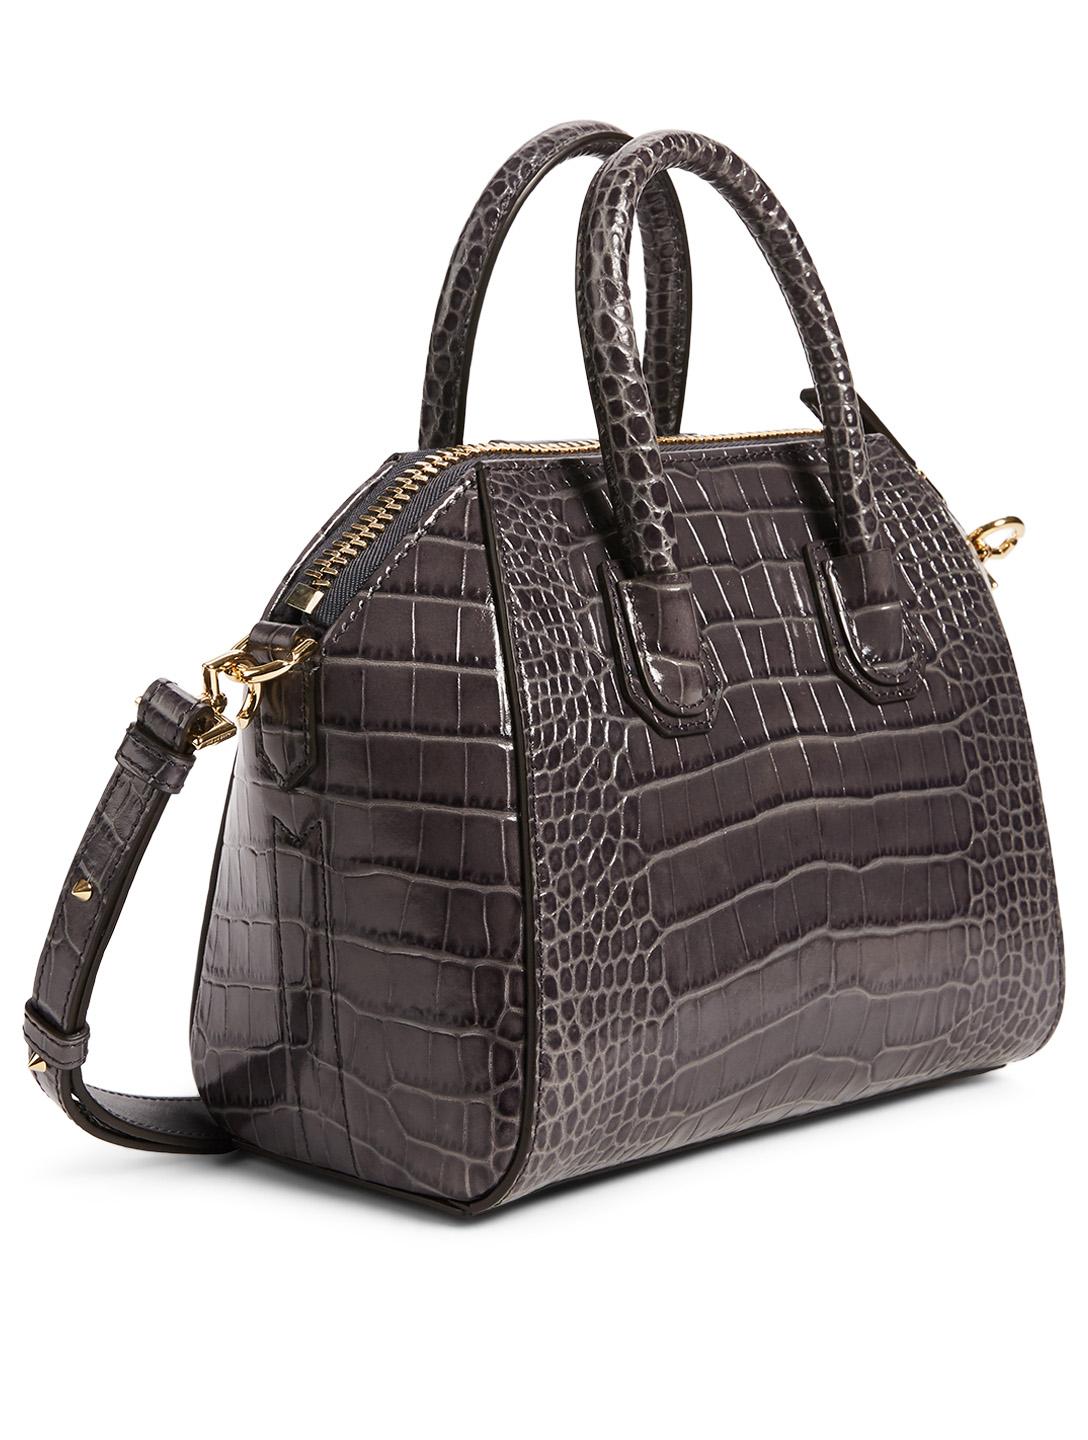 GIVENCHY Mini Antigona Croc-Embossed Leather Bag Women's Pink